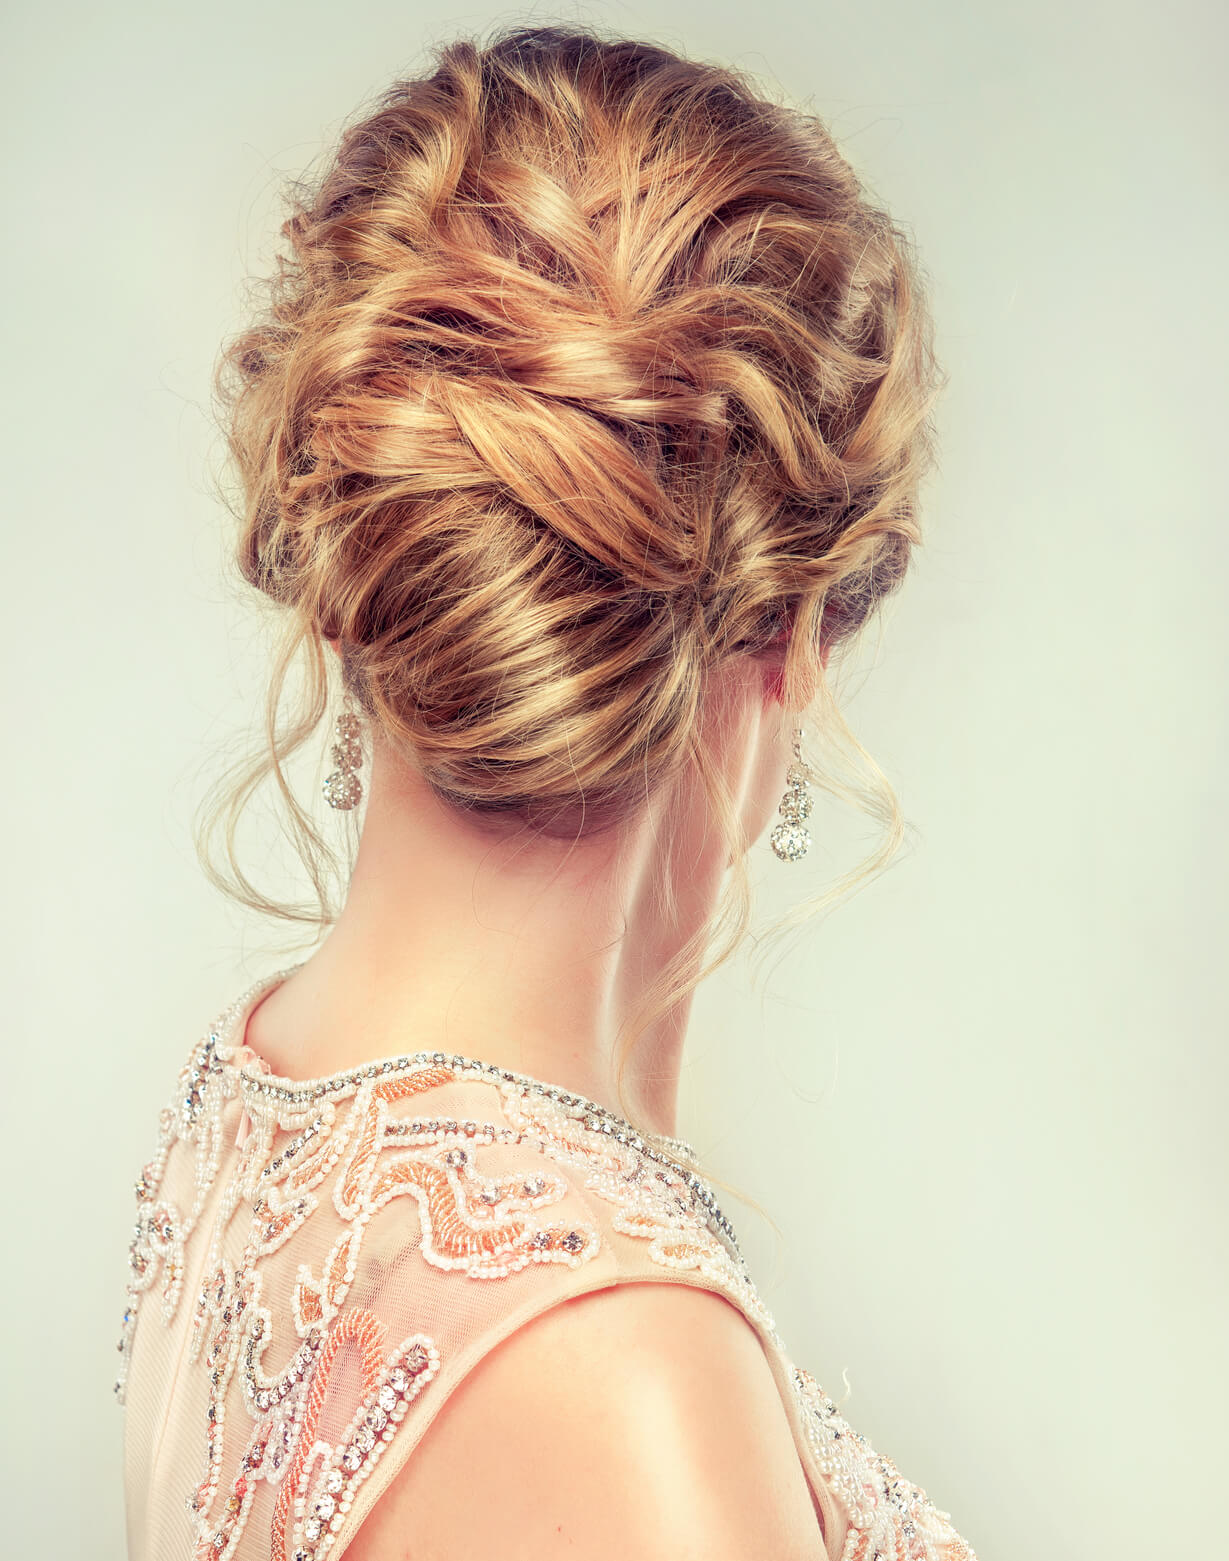 messy, curly hair updo